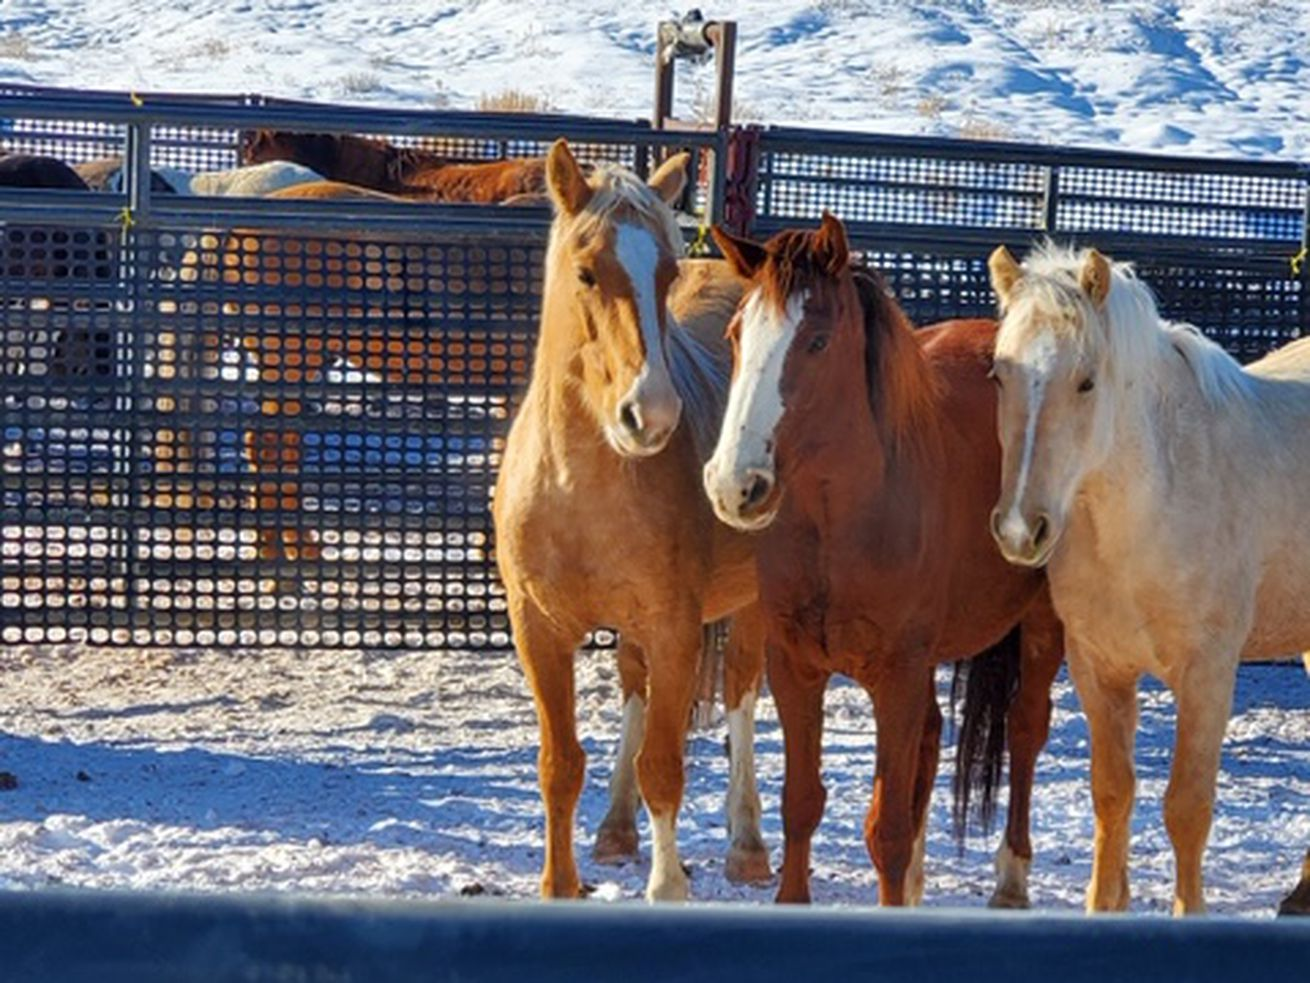 Nearly 300 stray horses gathered in Uintah County